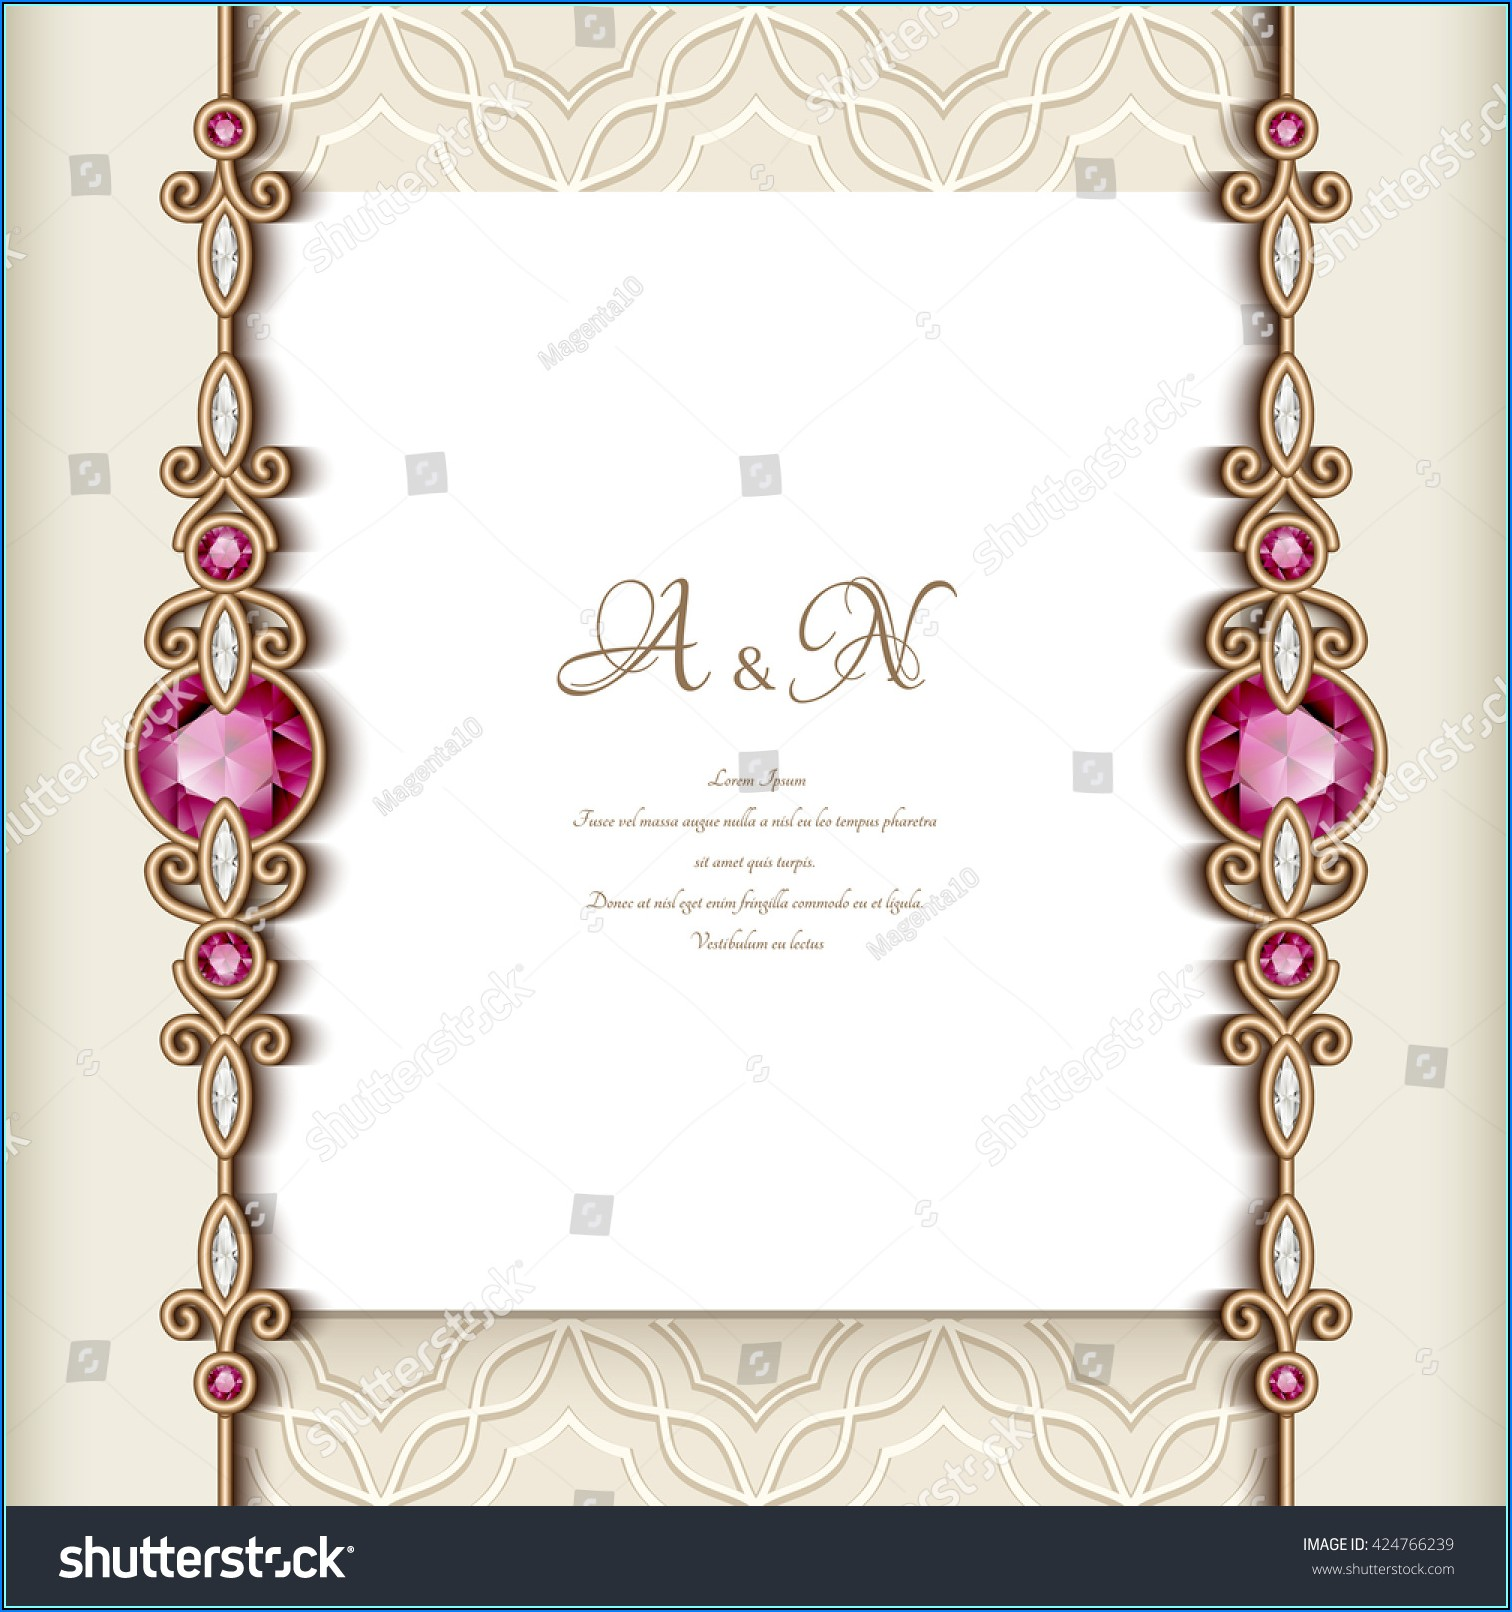 Free Invitation To Dinner Templates